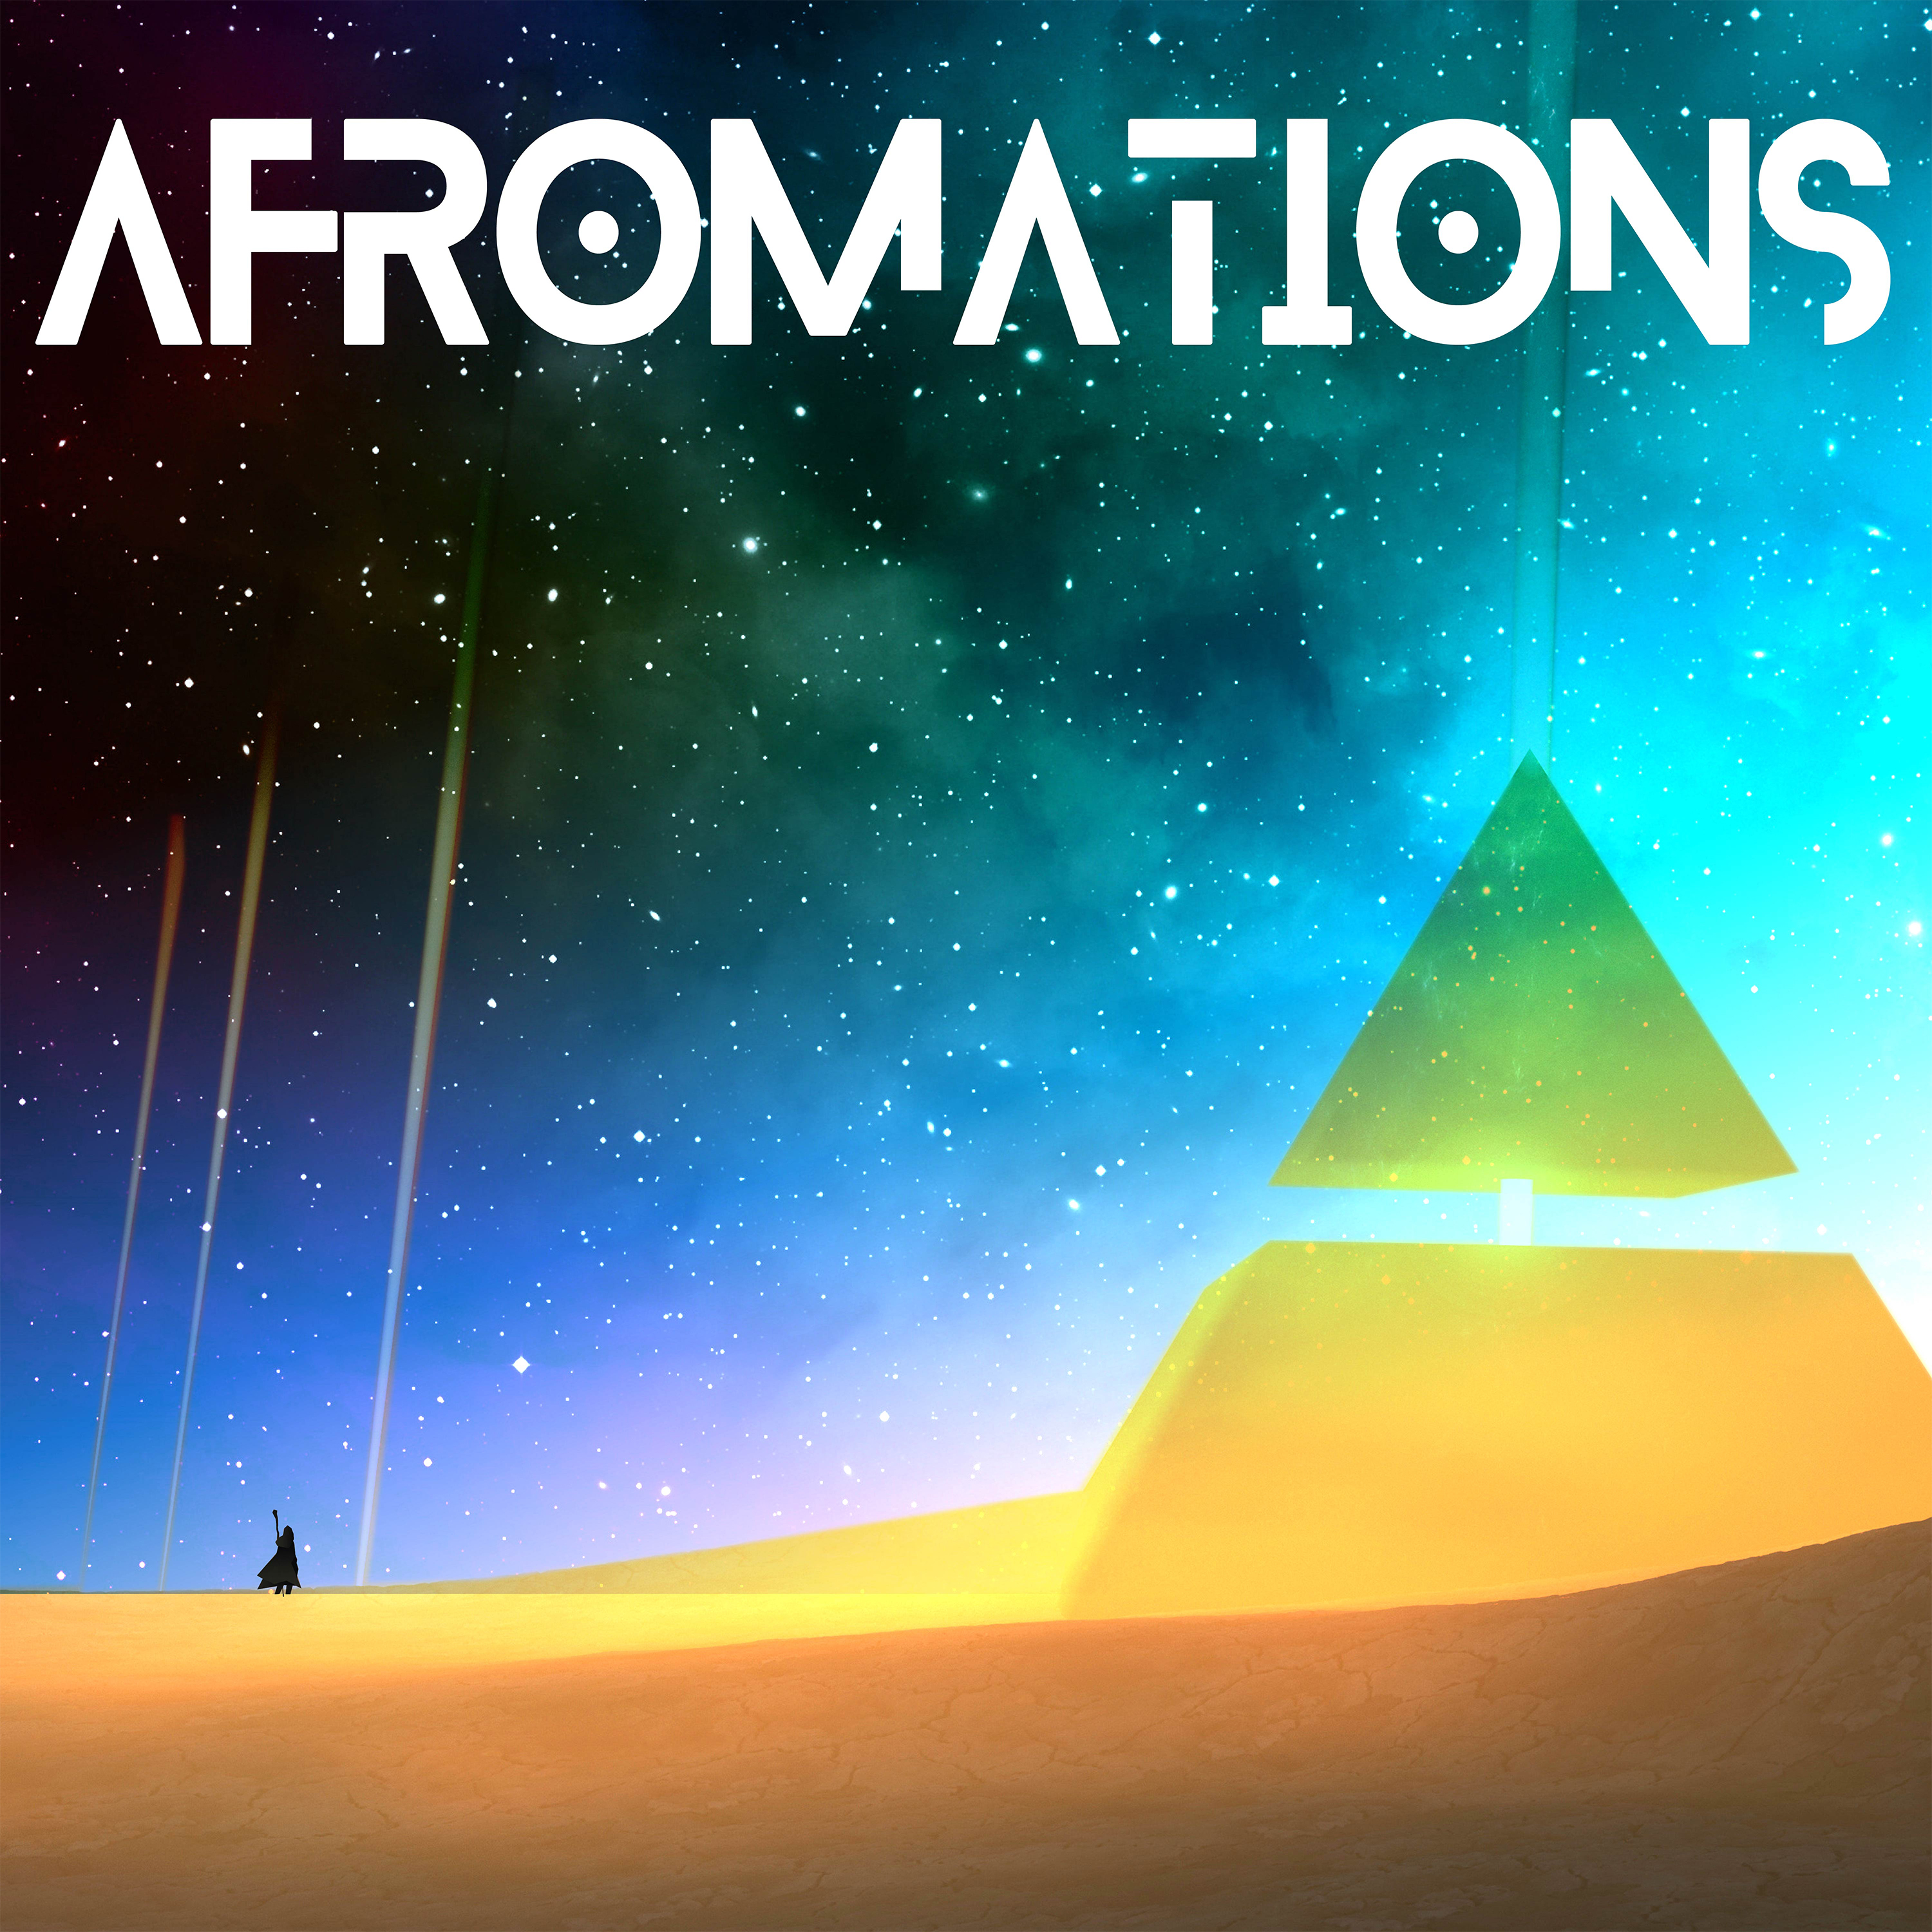 Image of Afromations cover art